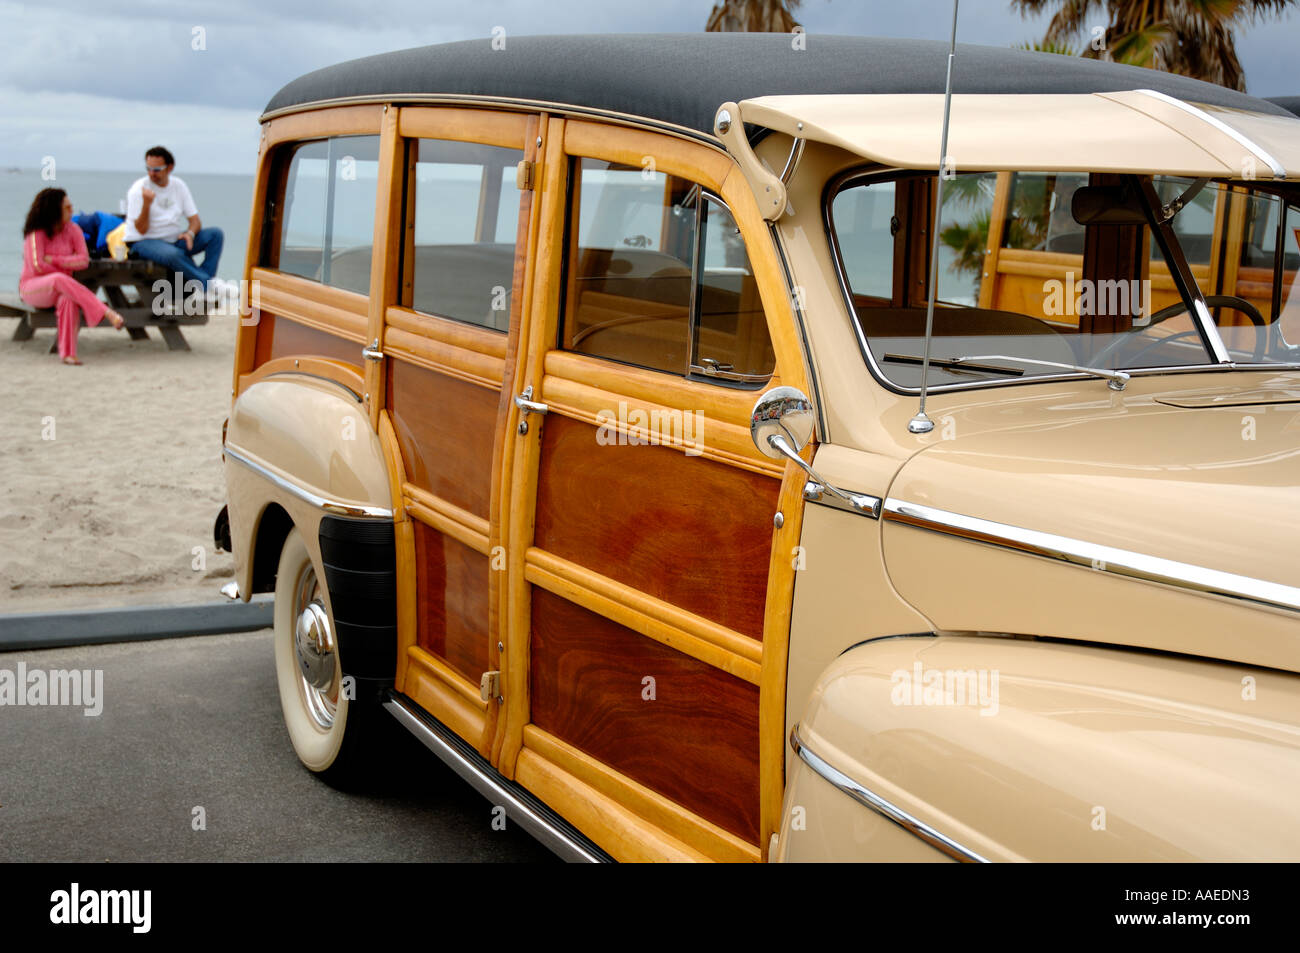 Southern California Classic: Woodies In Southern California, Classic Wood-panelled